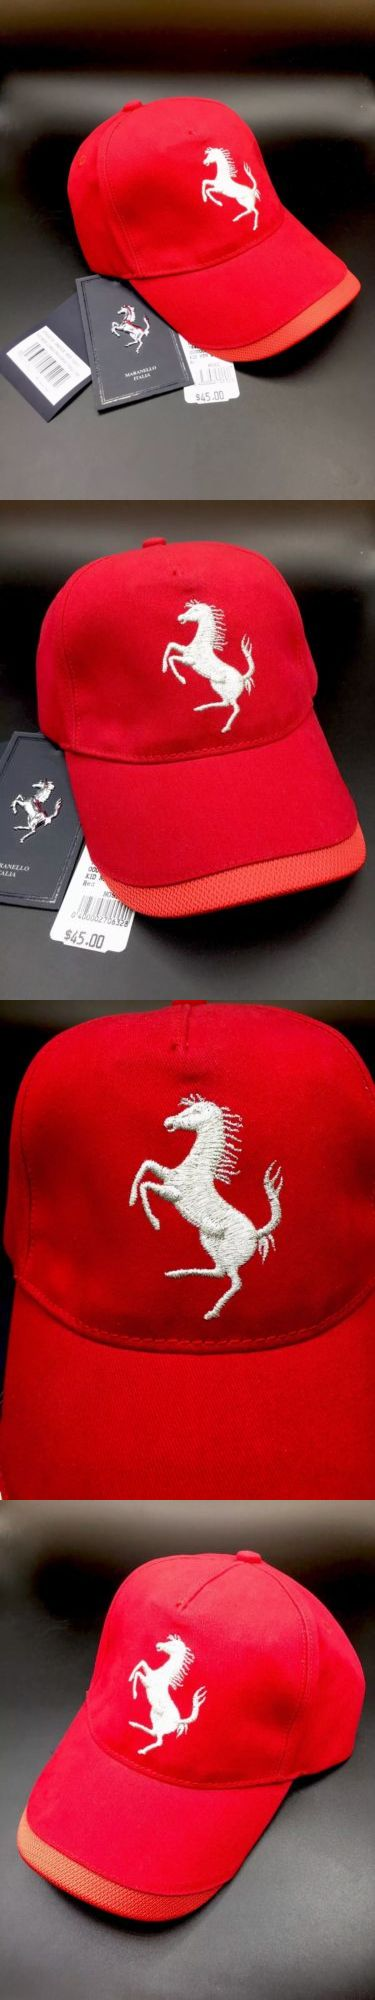 39bd28f5d45 Hats 15630  Ferrari Kids Youth Lurex Prancing Horse Twill Hat Cap Red One  Size 270032135 New -  BUY IT NOW ONLY   1699 on eBay!